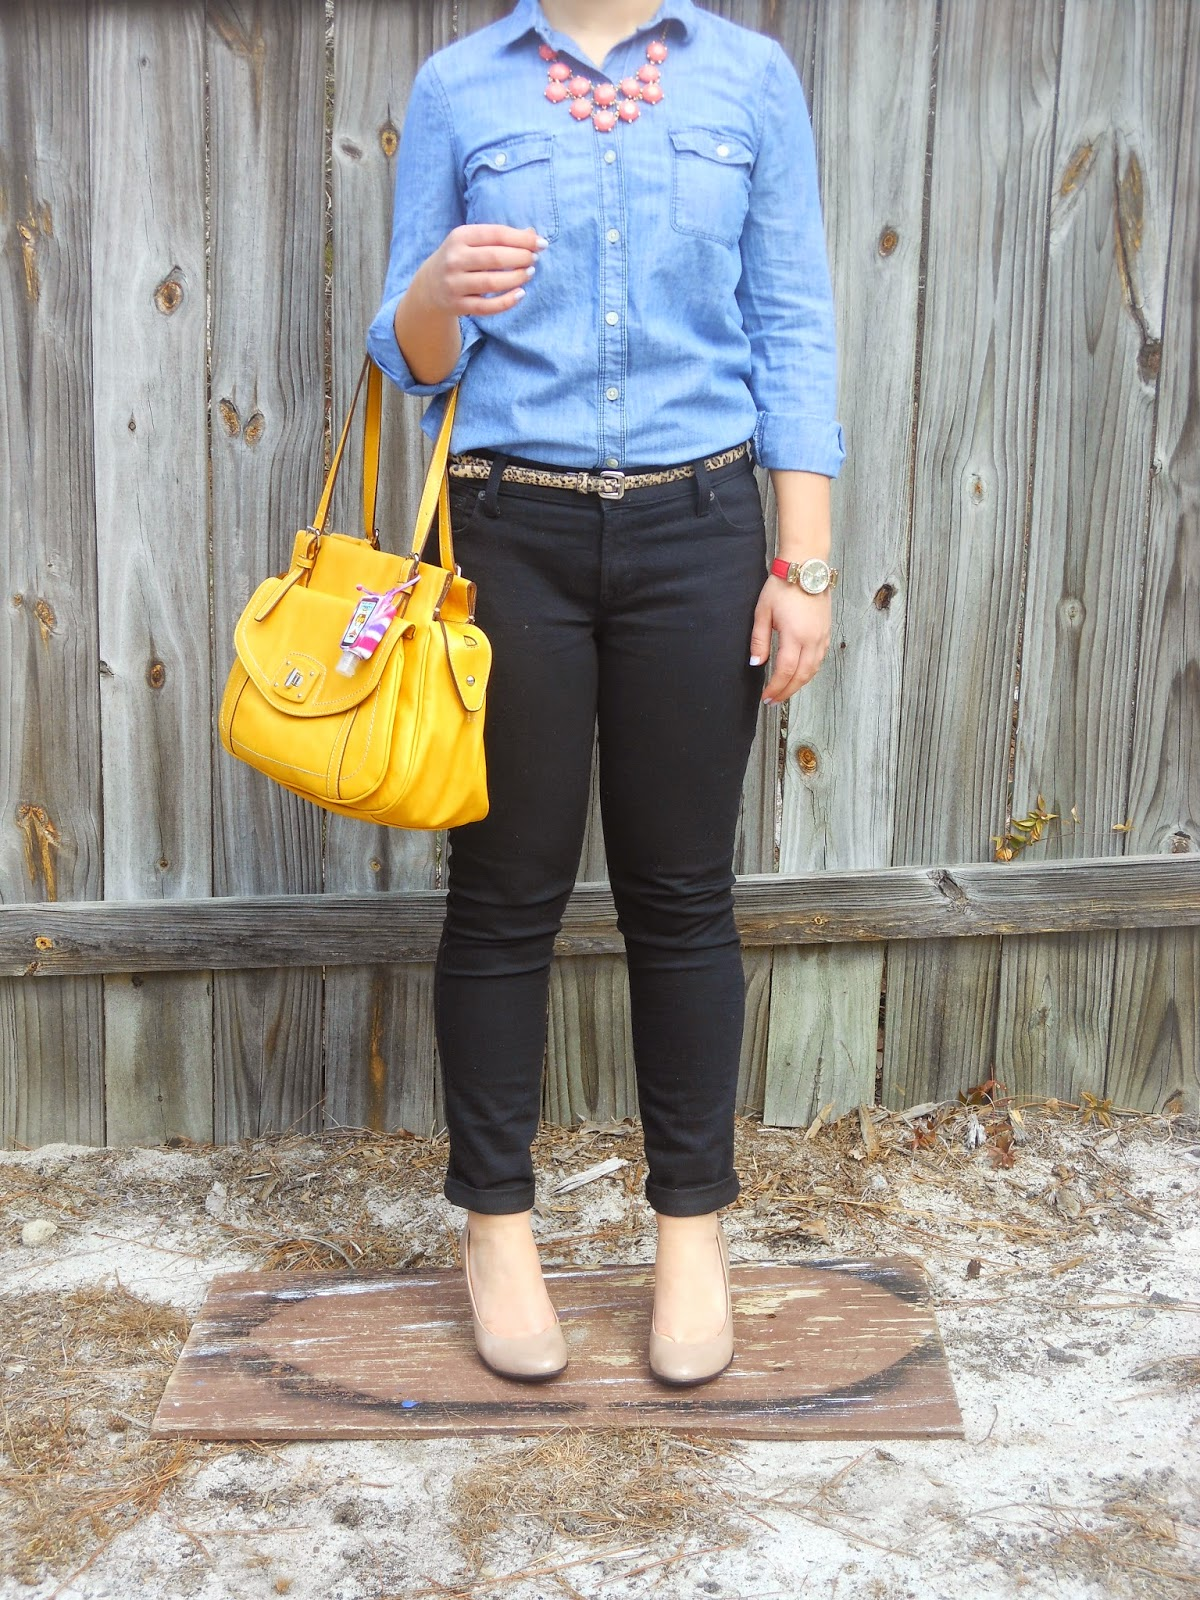 Chambray, Leopard, and Nude Heels. Chambray, black jeans, leopard belt, coral statement necklace, nude heels, yellow purse. http://mybowsandclothes.blogspot.com/.